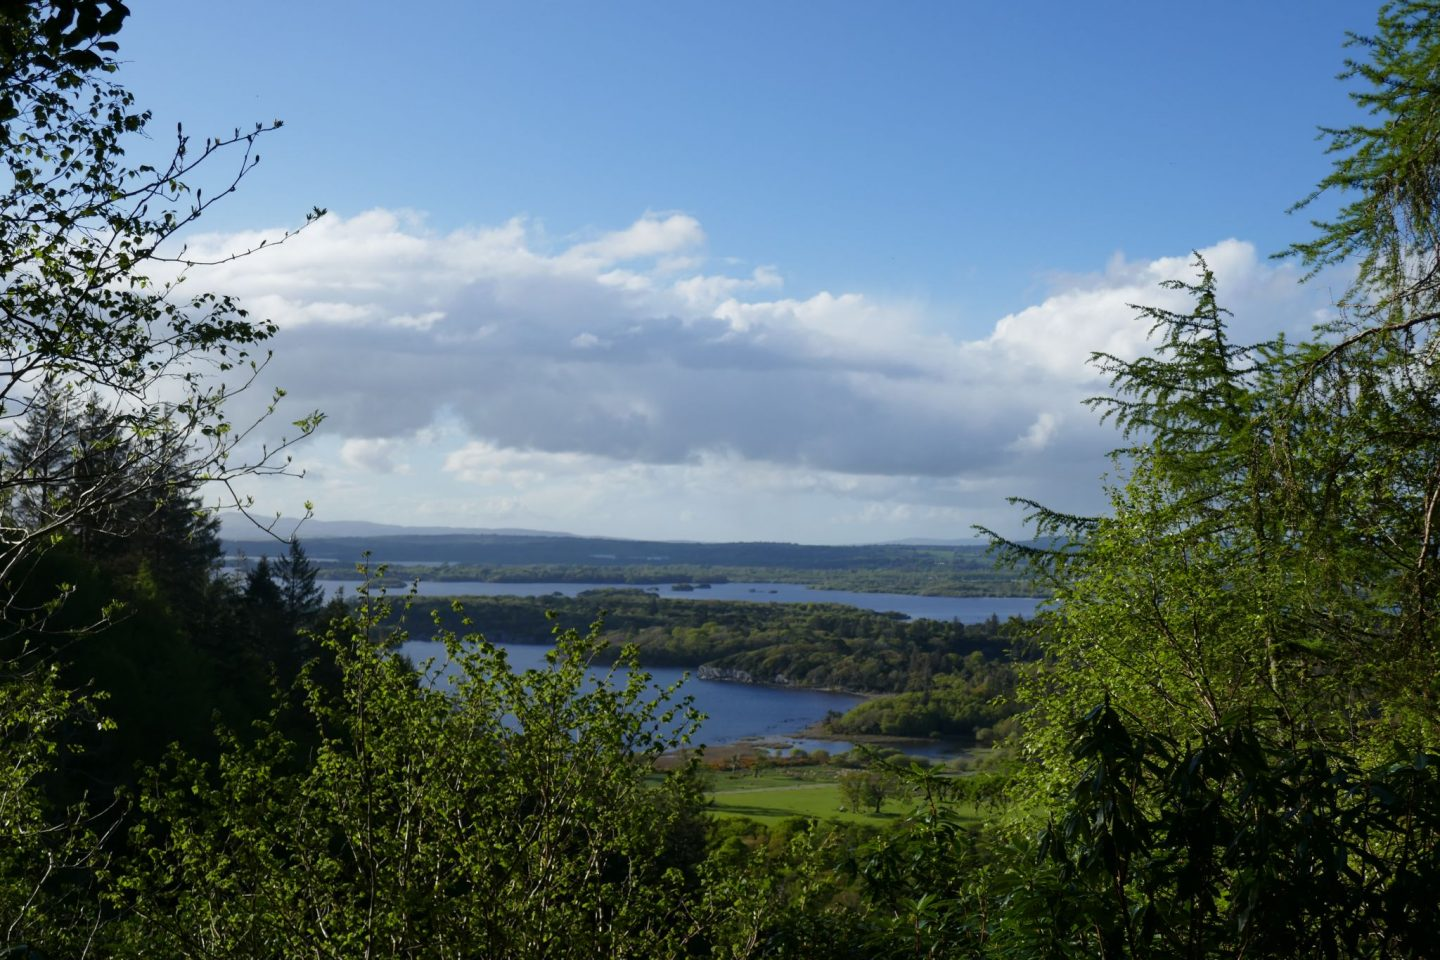 View over lake on way to Torc Waterfall